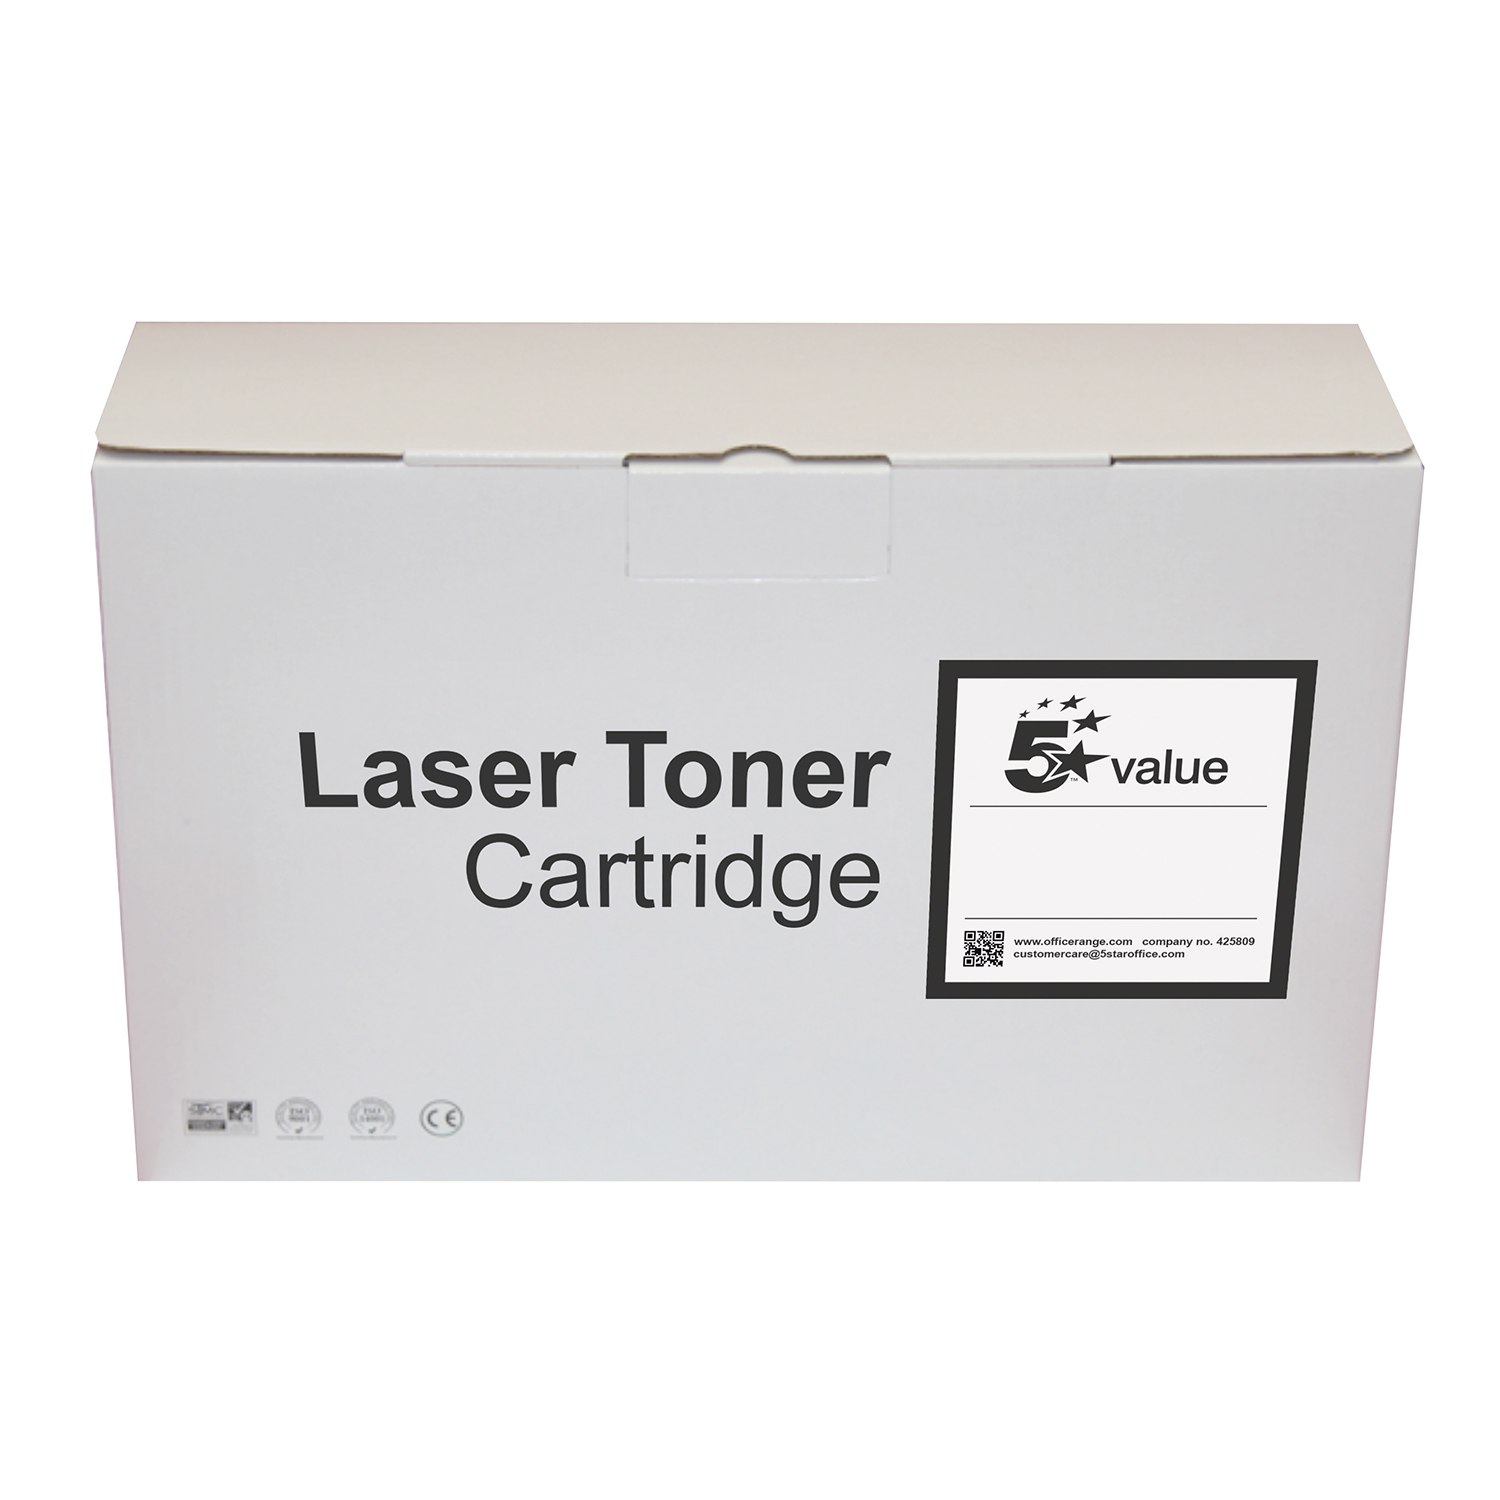 Laser Toner Cartridges 5 Star Value Remanufactured Laser Drum Page Life 12000pp Black Brother DR2200 Alternative